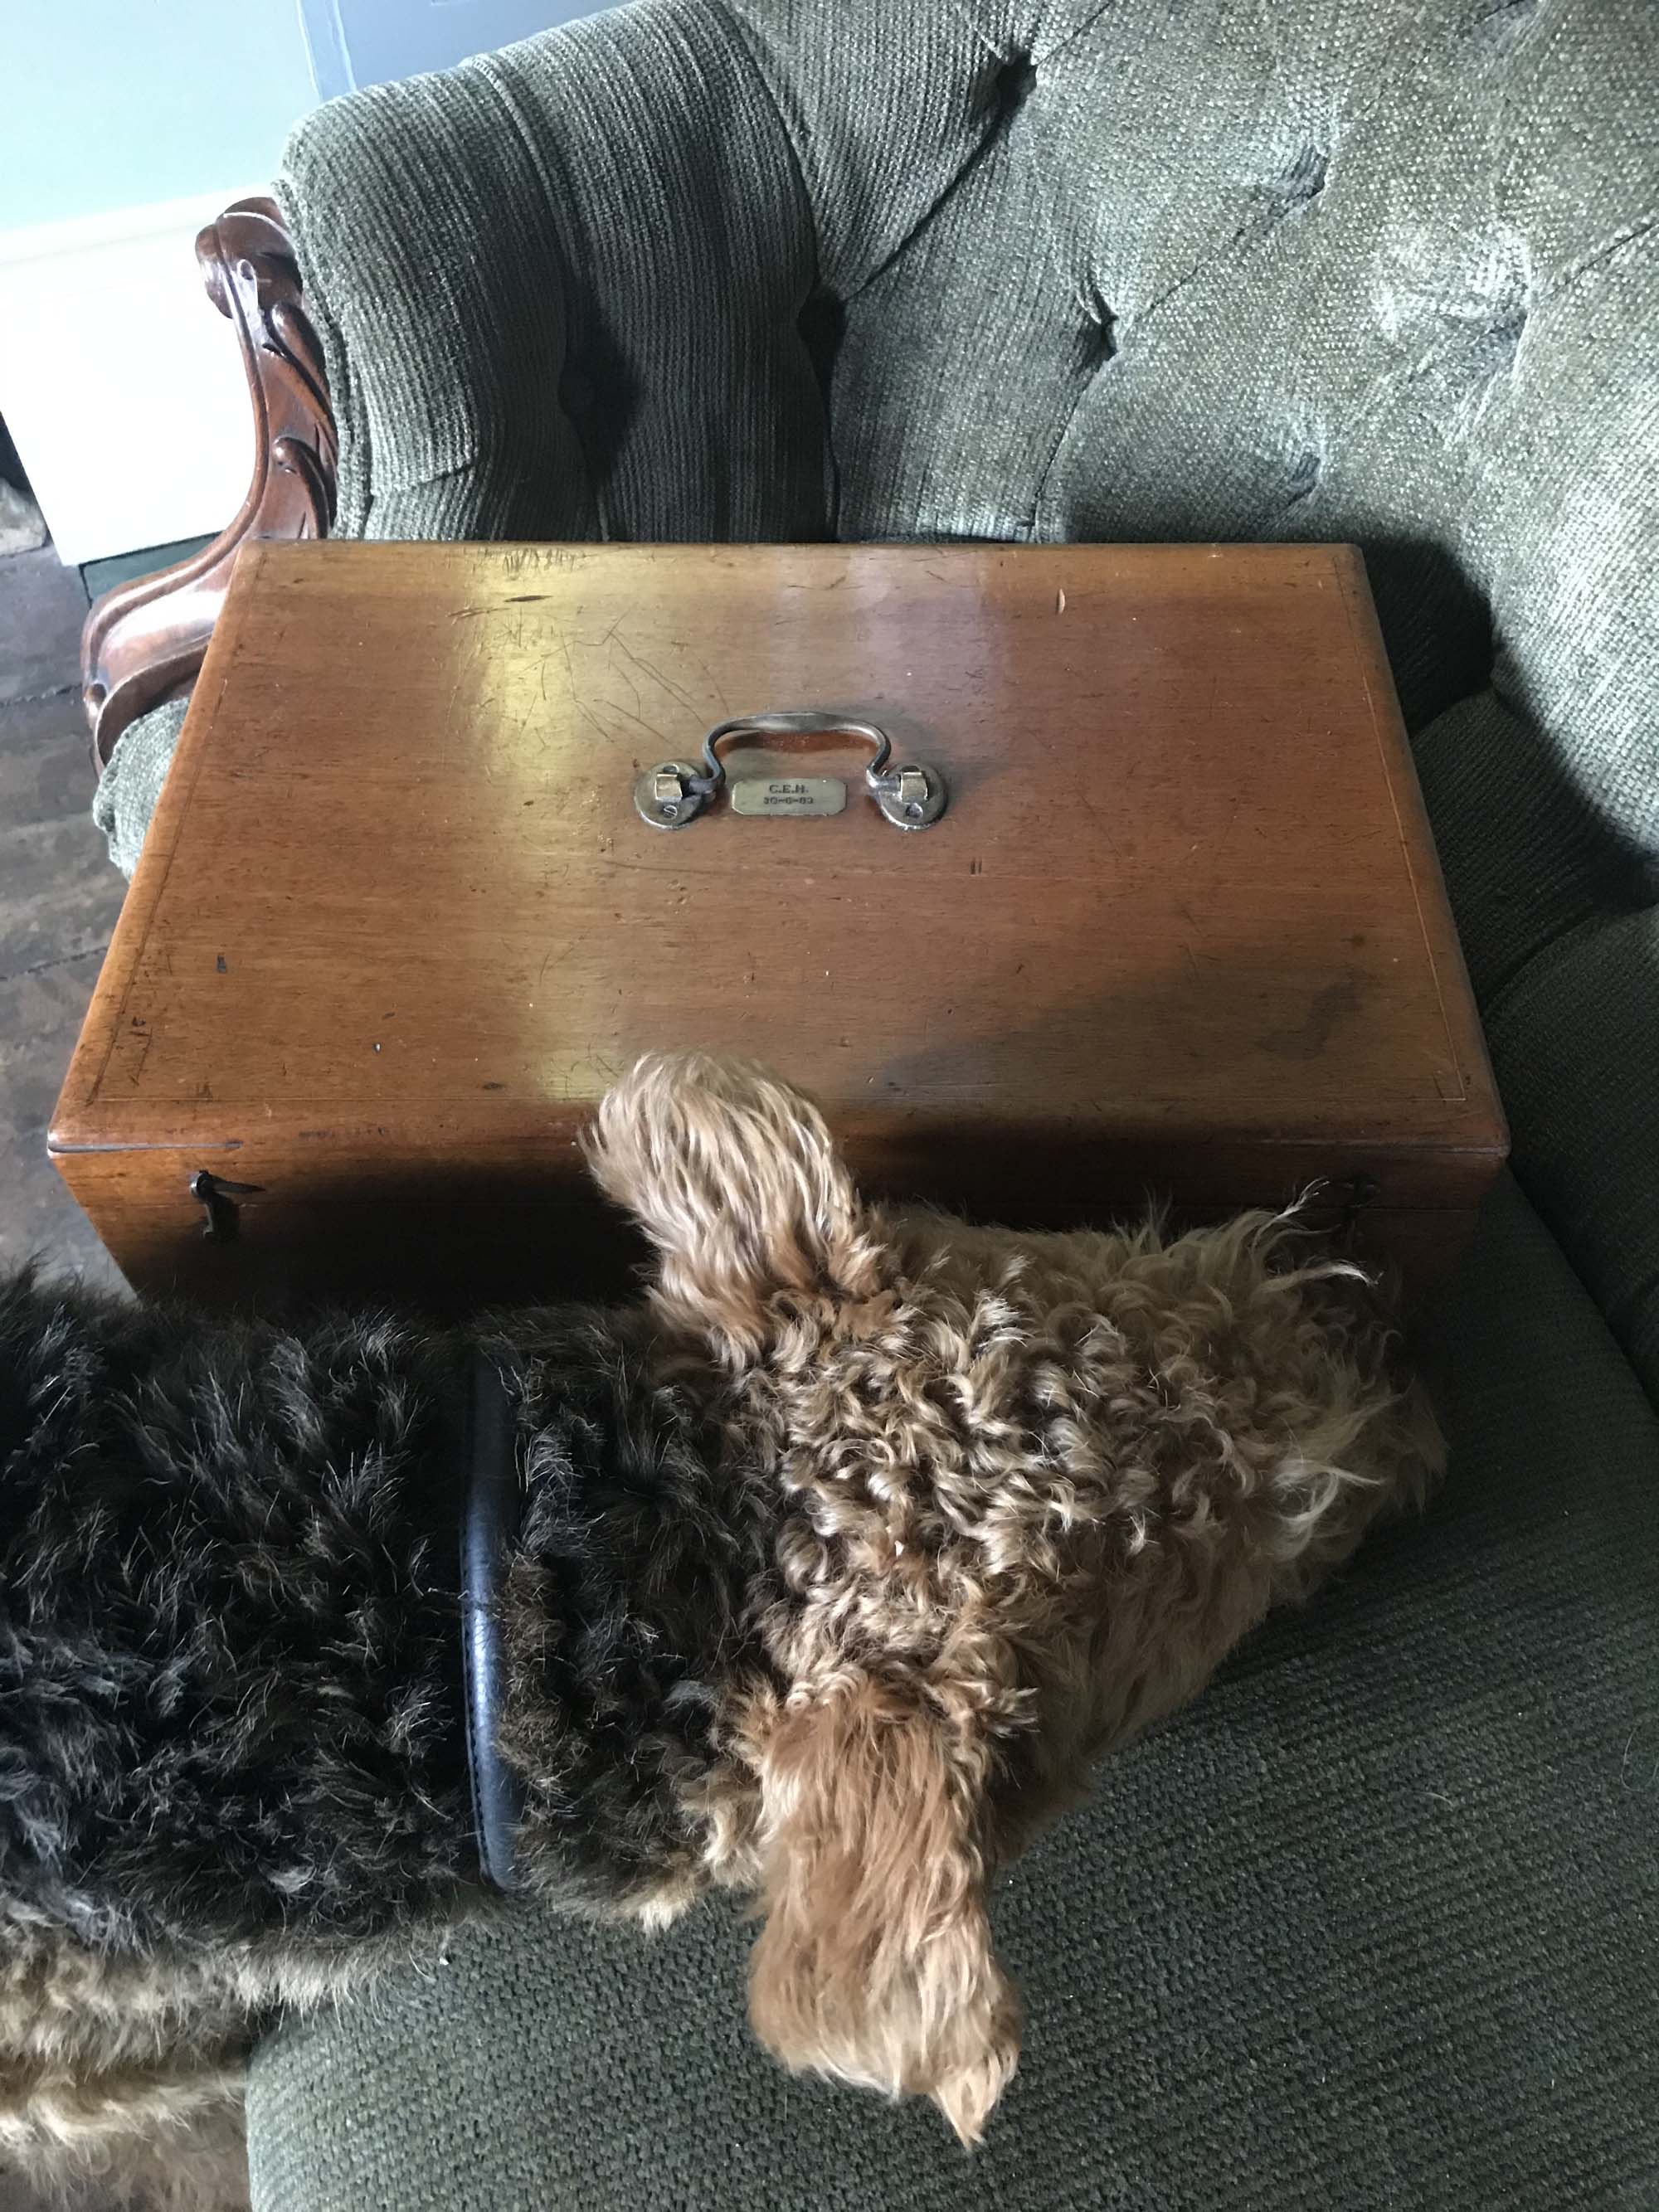 Catherine Hills vintage jewellery box and Rolo